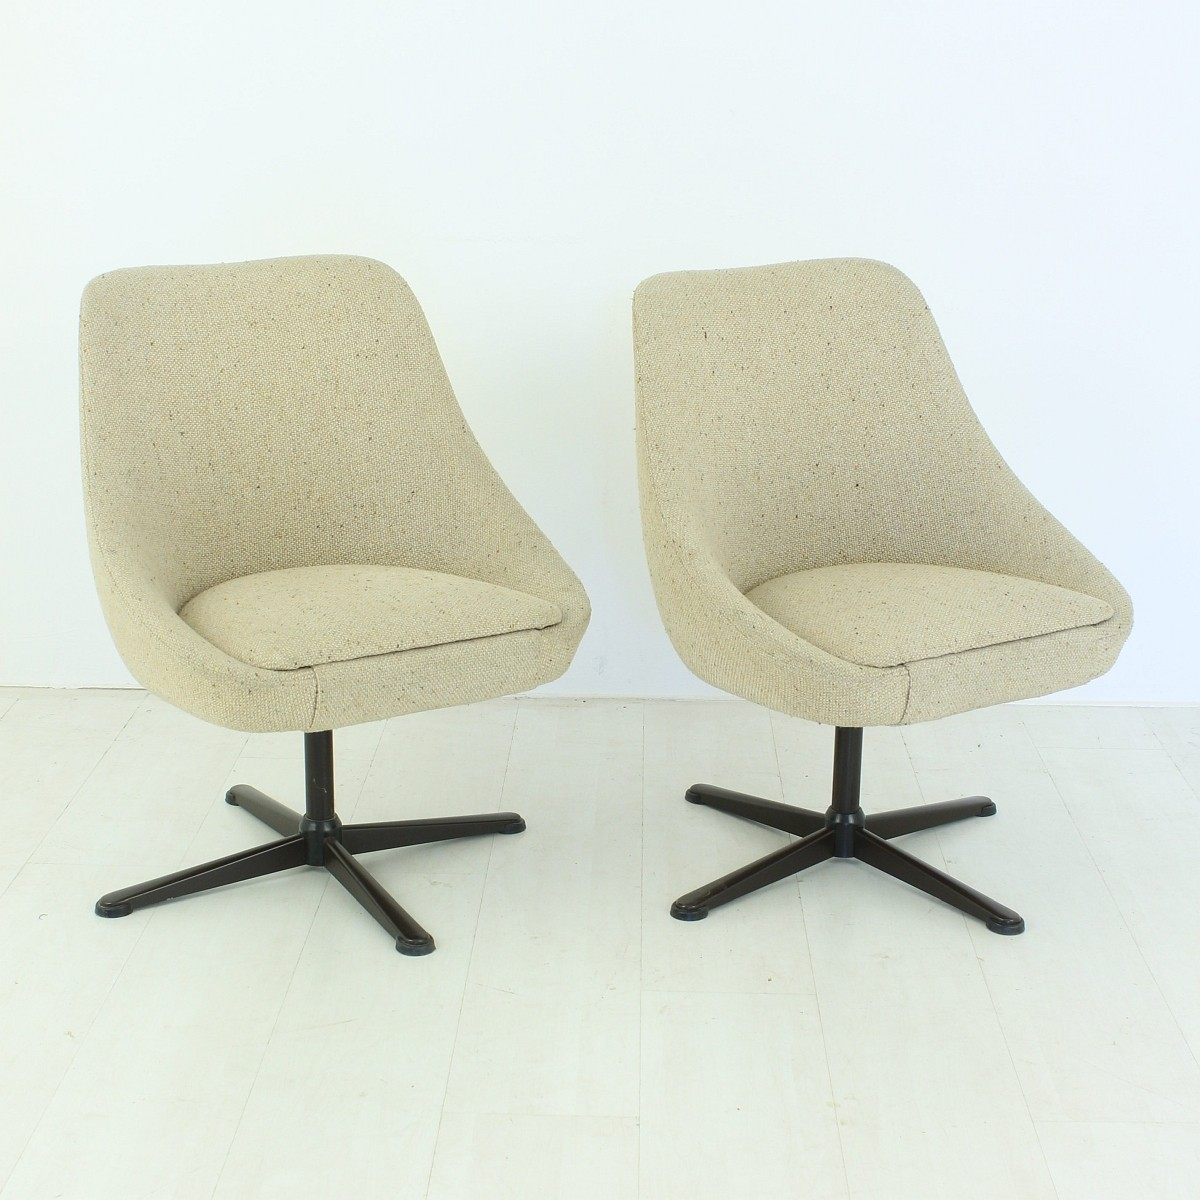 Retro Sessel 60er 60er Jahre Vintage Cocktail Sessel 2er Set